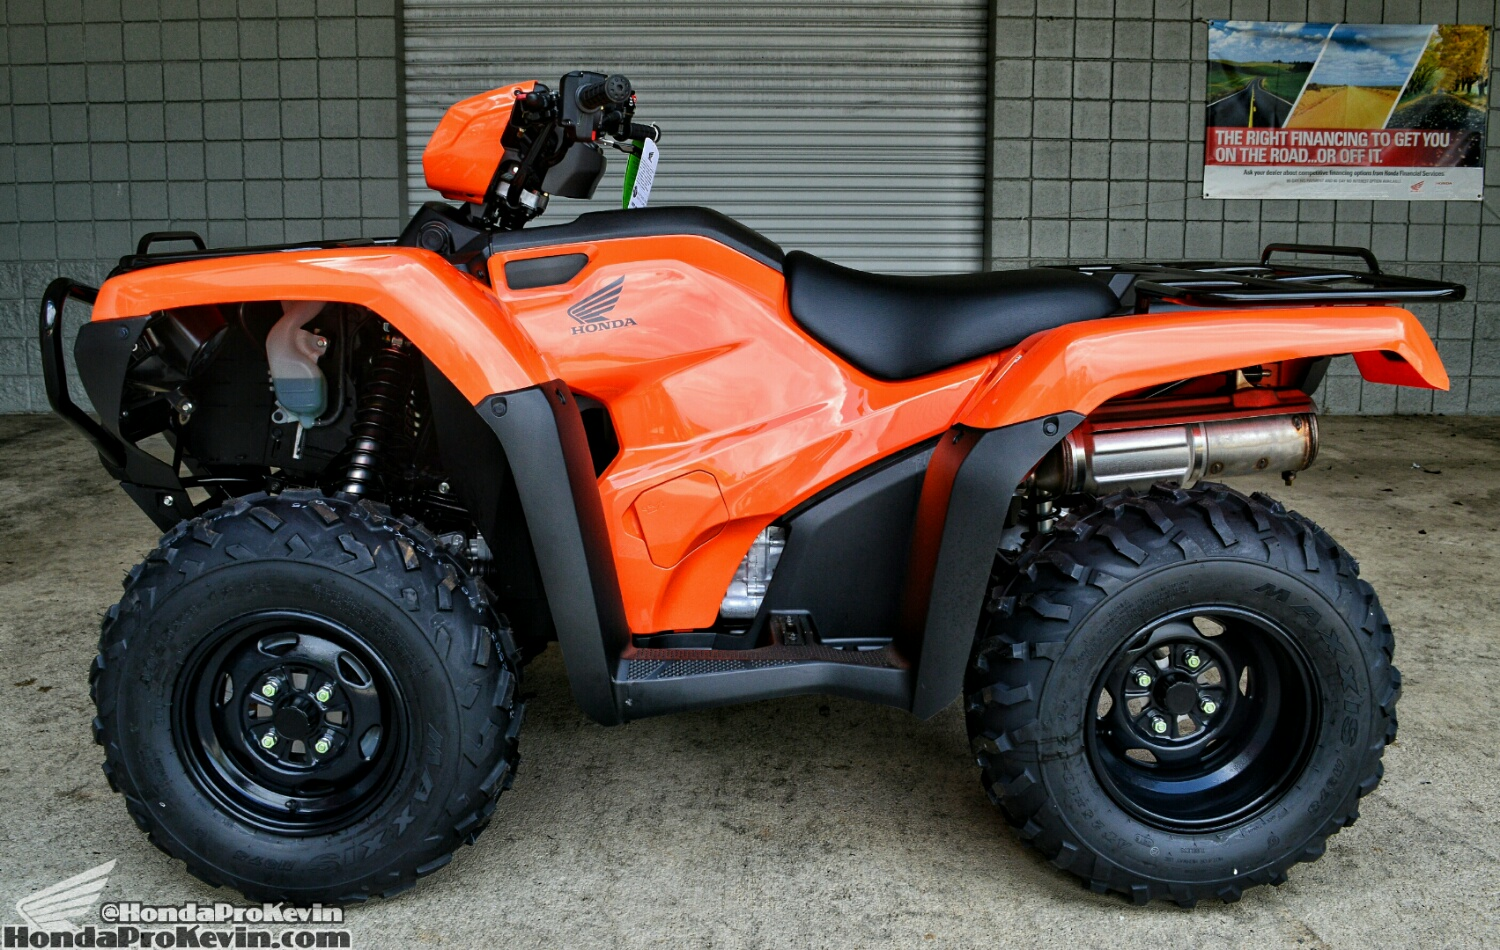 2016 Honda Foreman 500 ATV Review Specs Horsepower